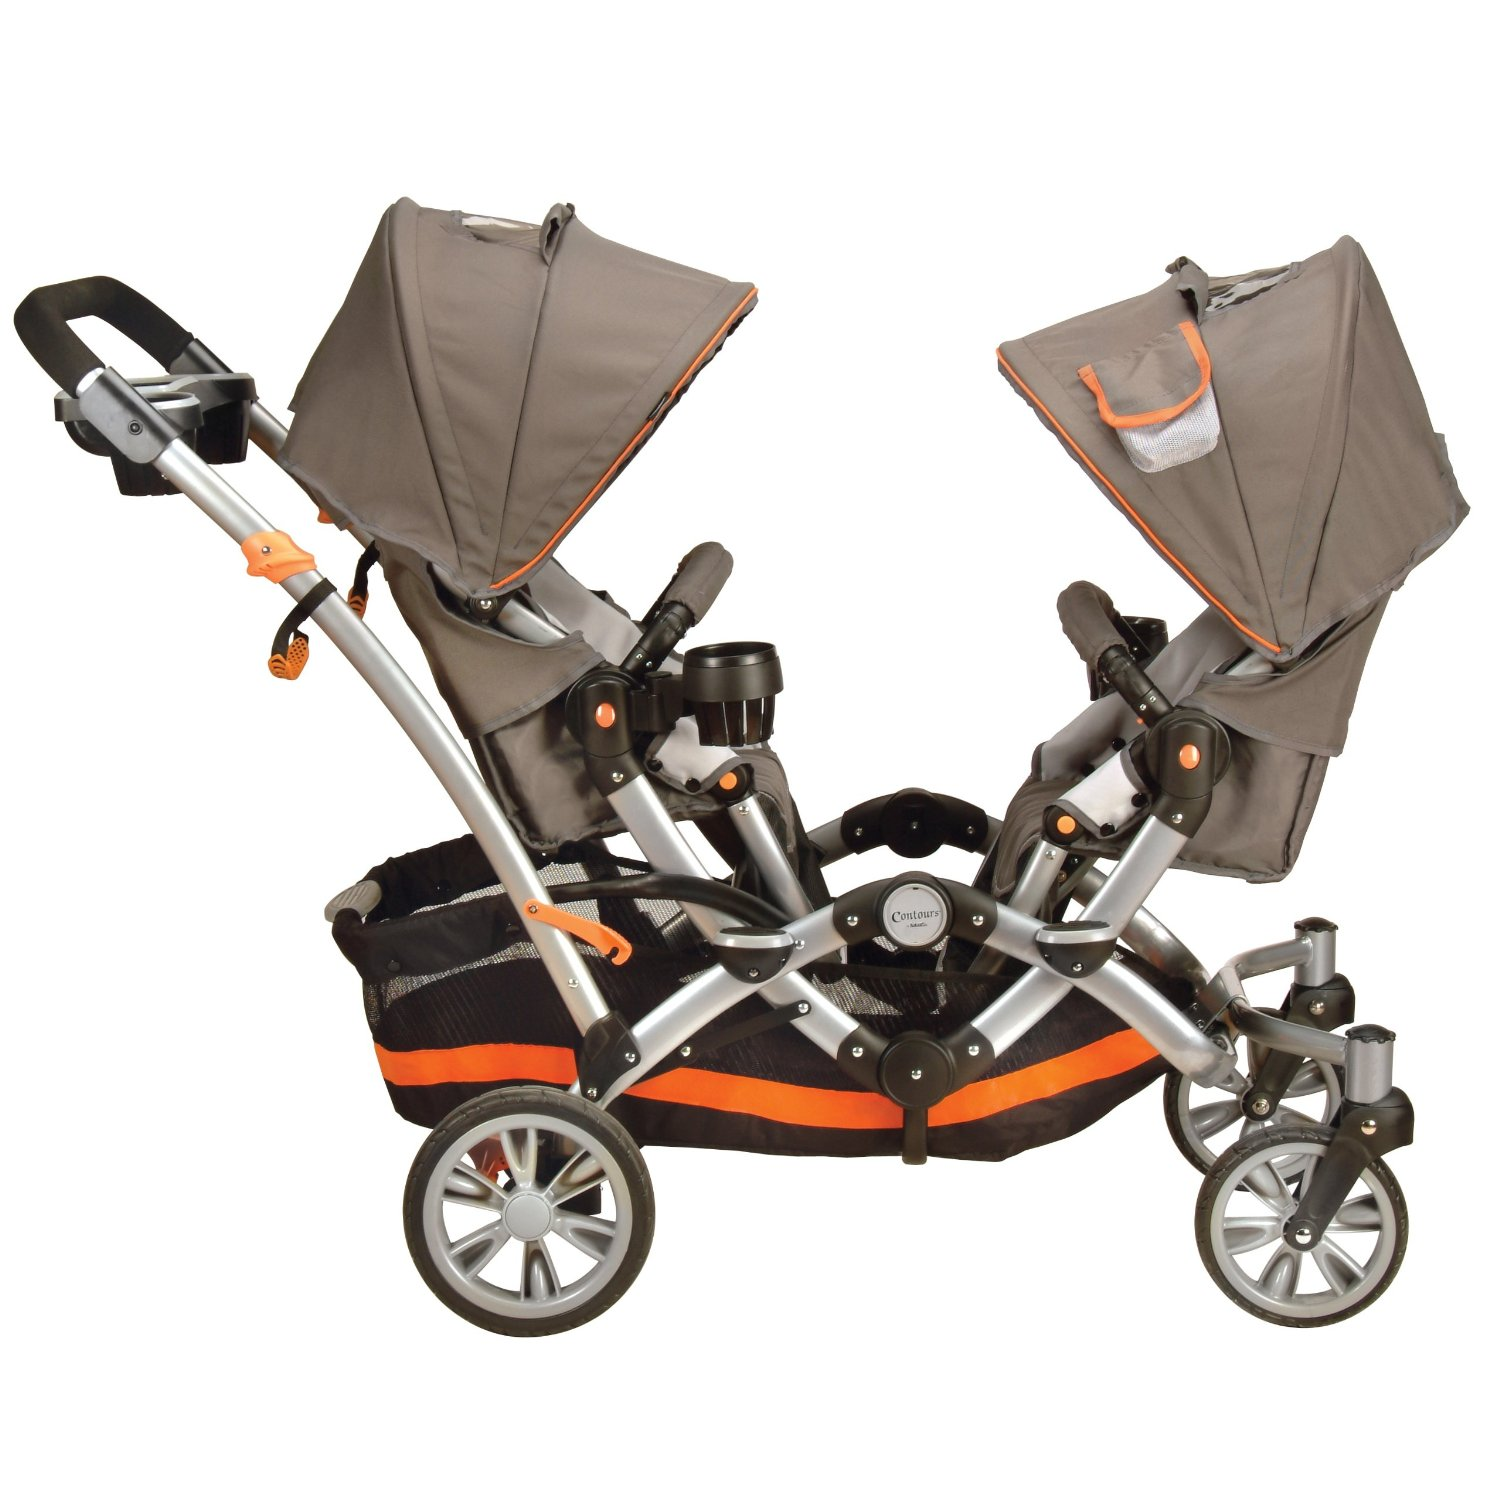 Why I am purchasing the Contours Options Tandem II stroller and summary of online parent reviews